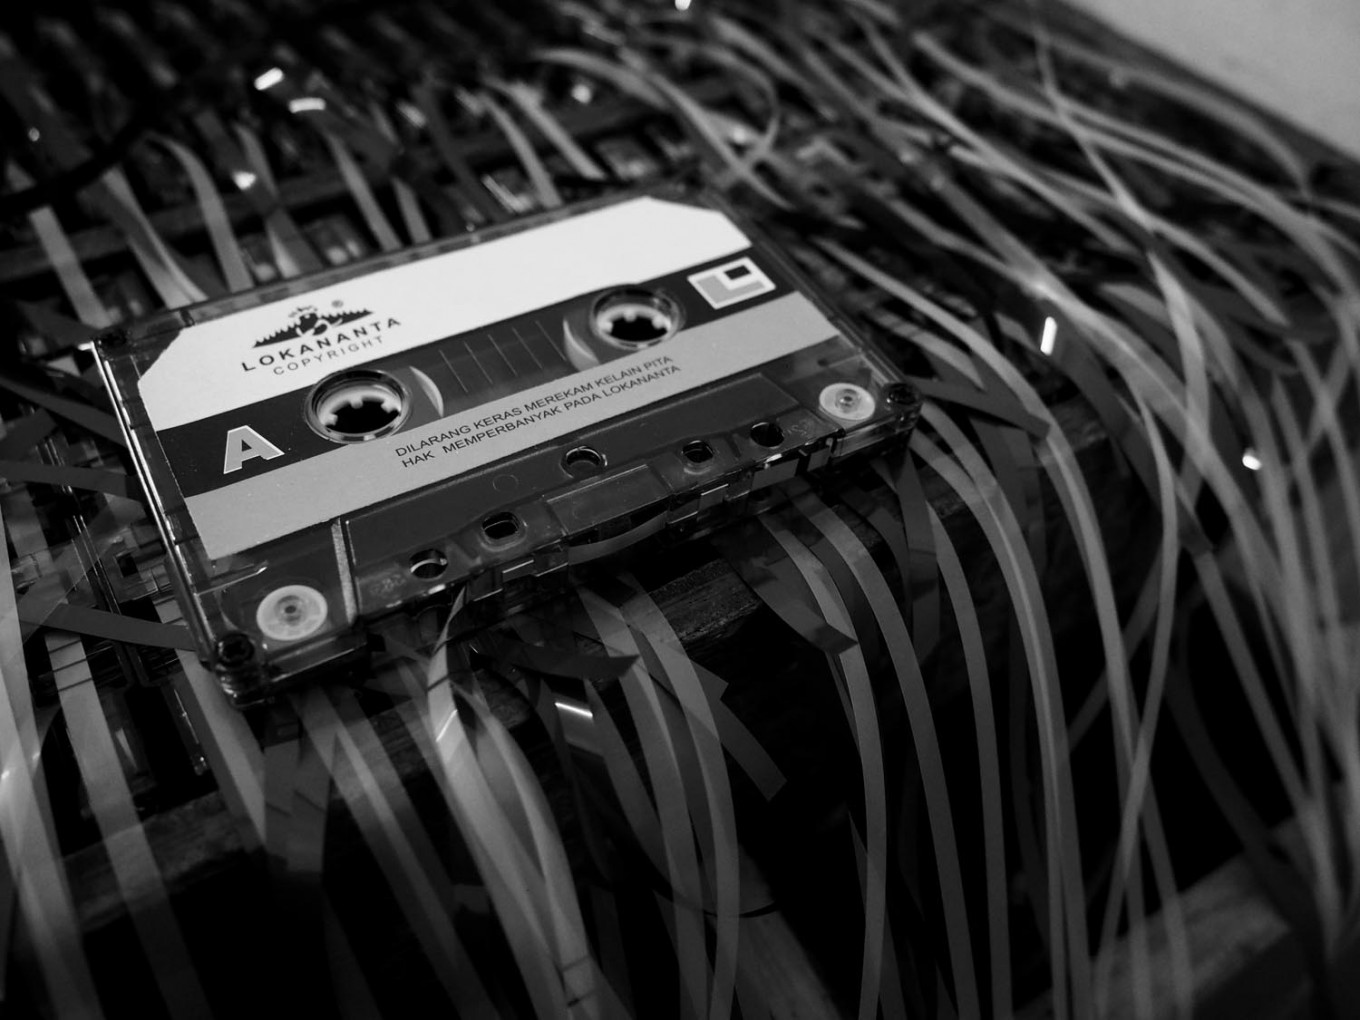 A Lokananta cassette lies on a machine. JP/Ganug Nugroho Adi